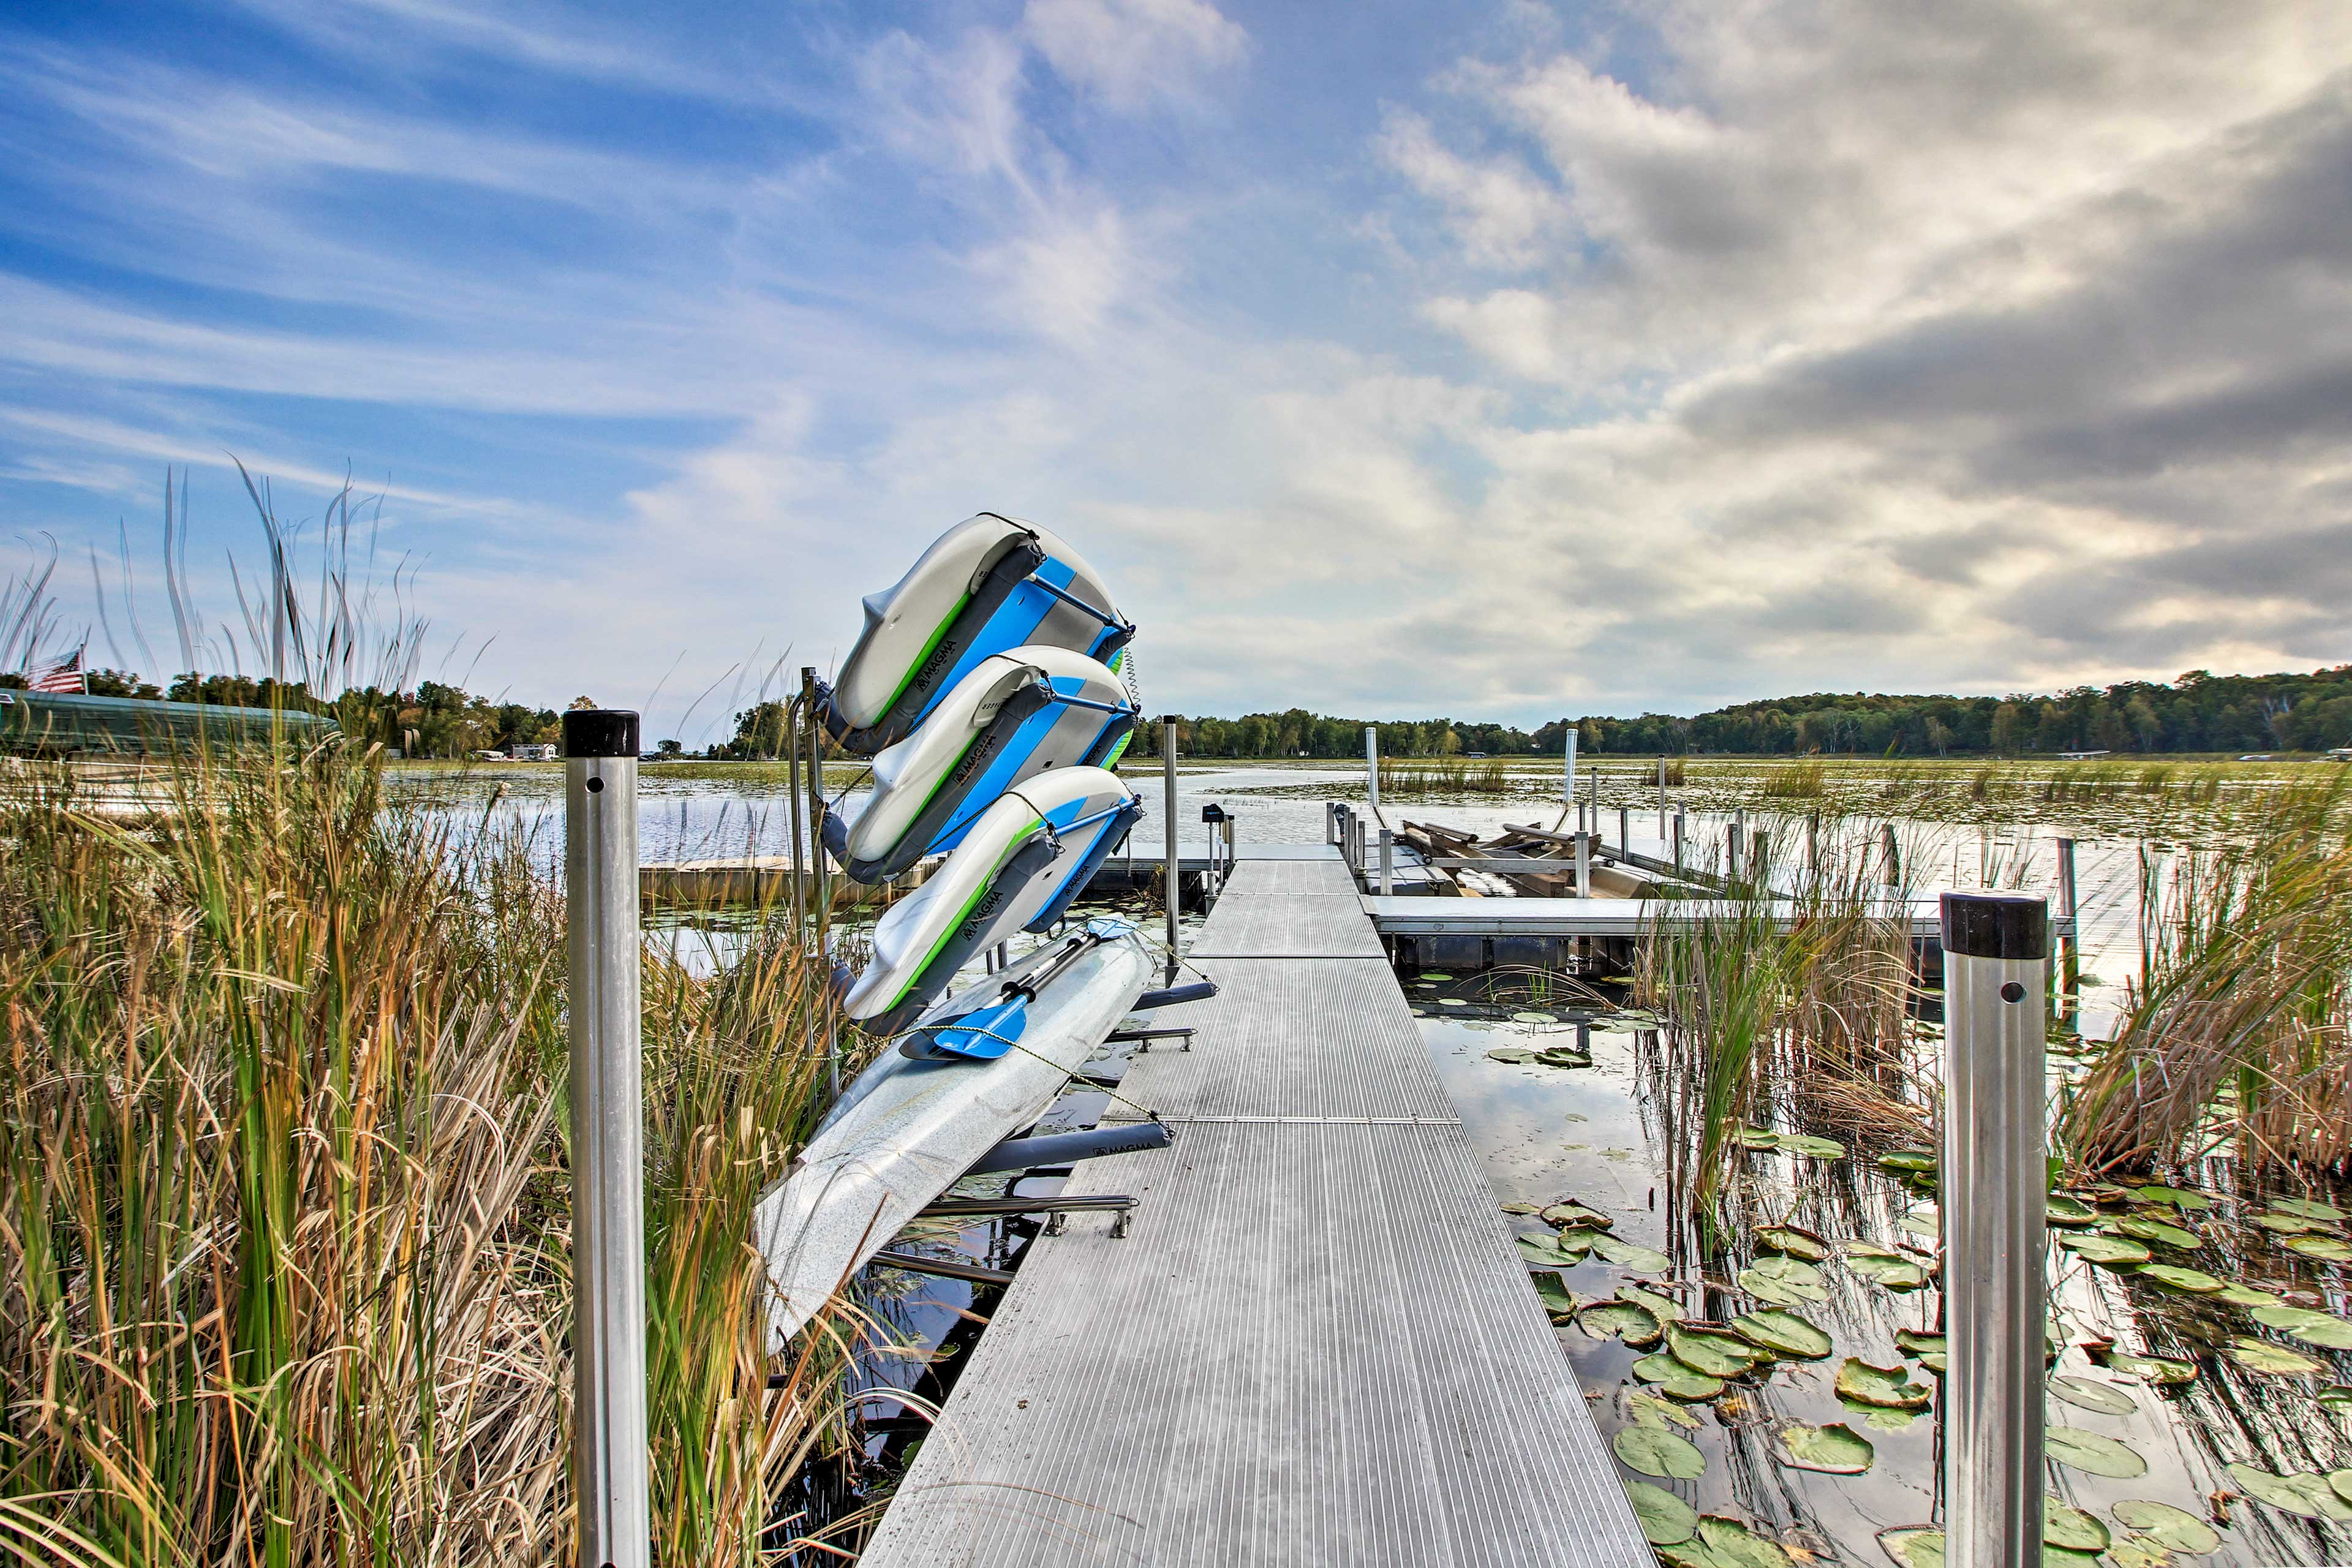 Head to the deck and start your lake adventure.